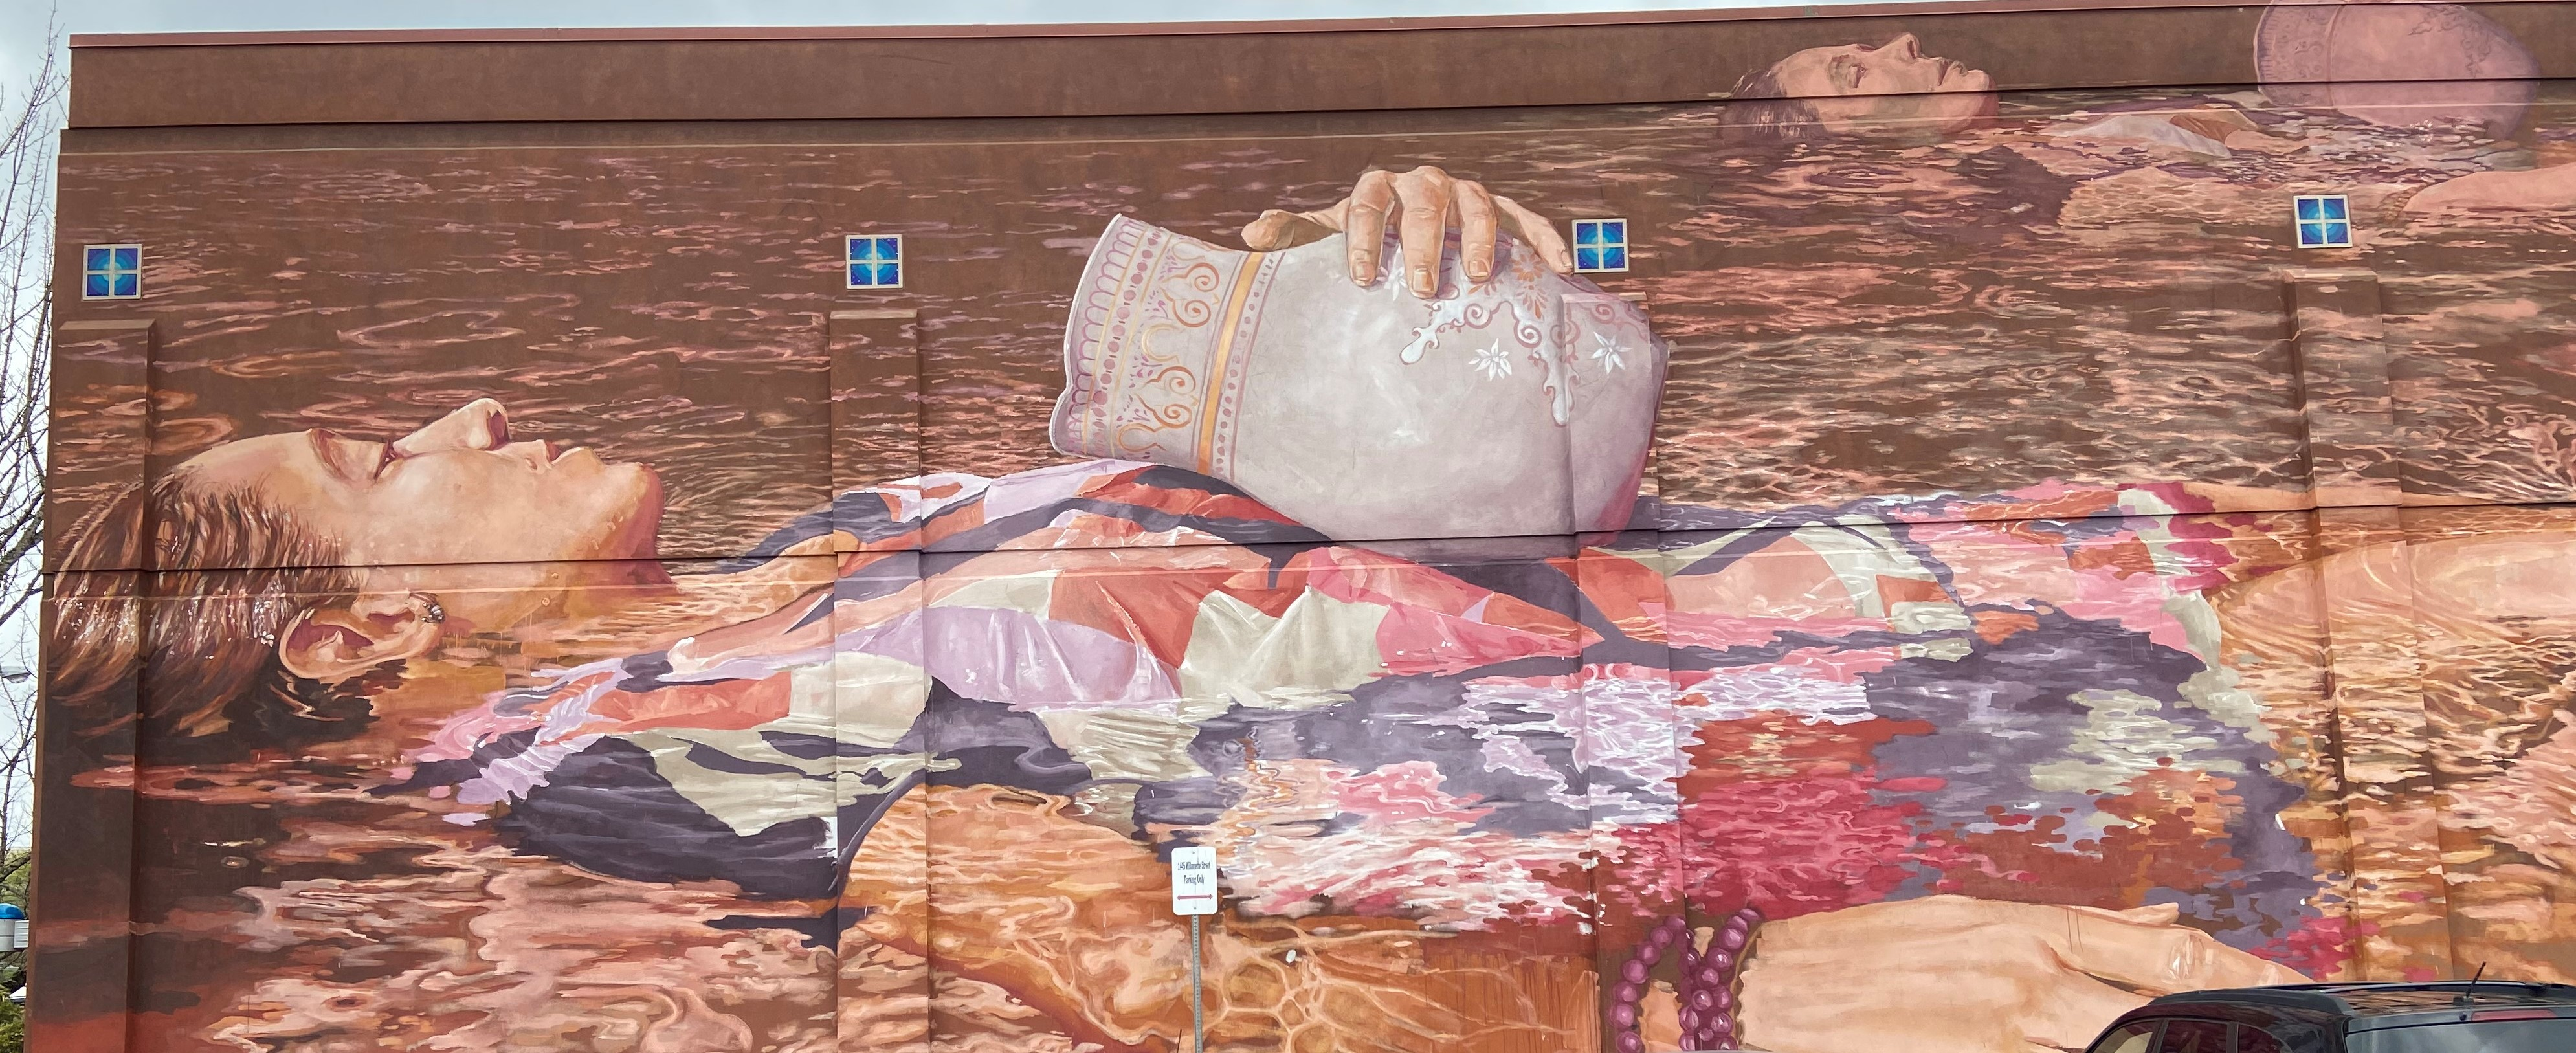 laying lady mural